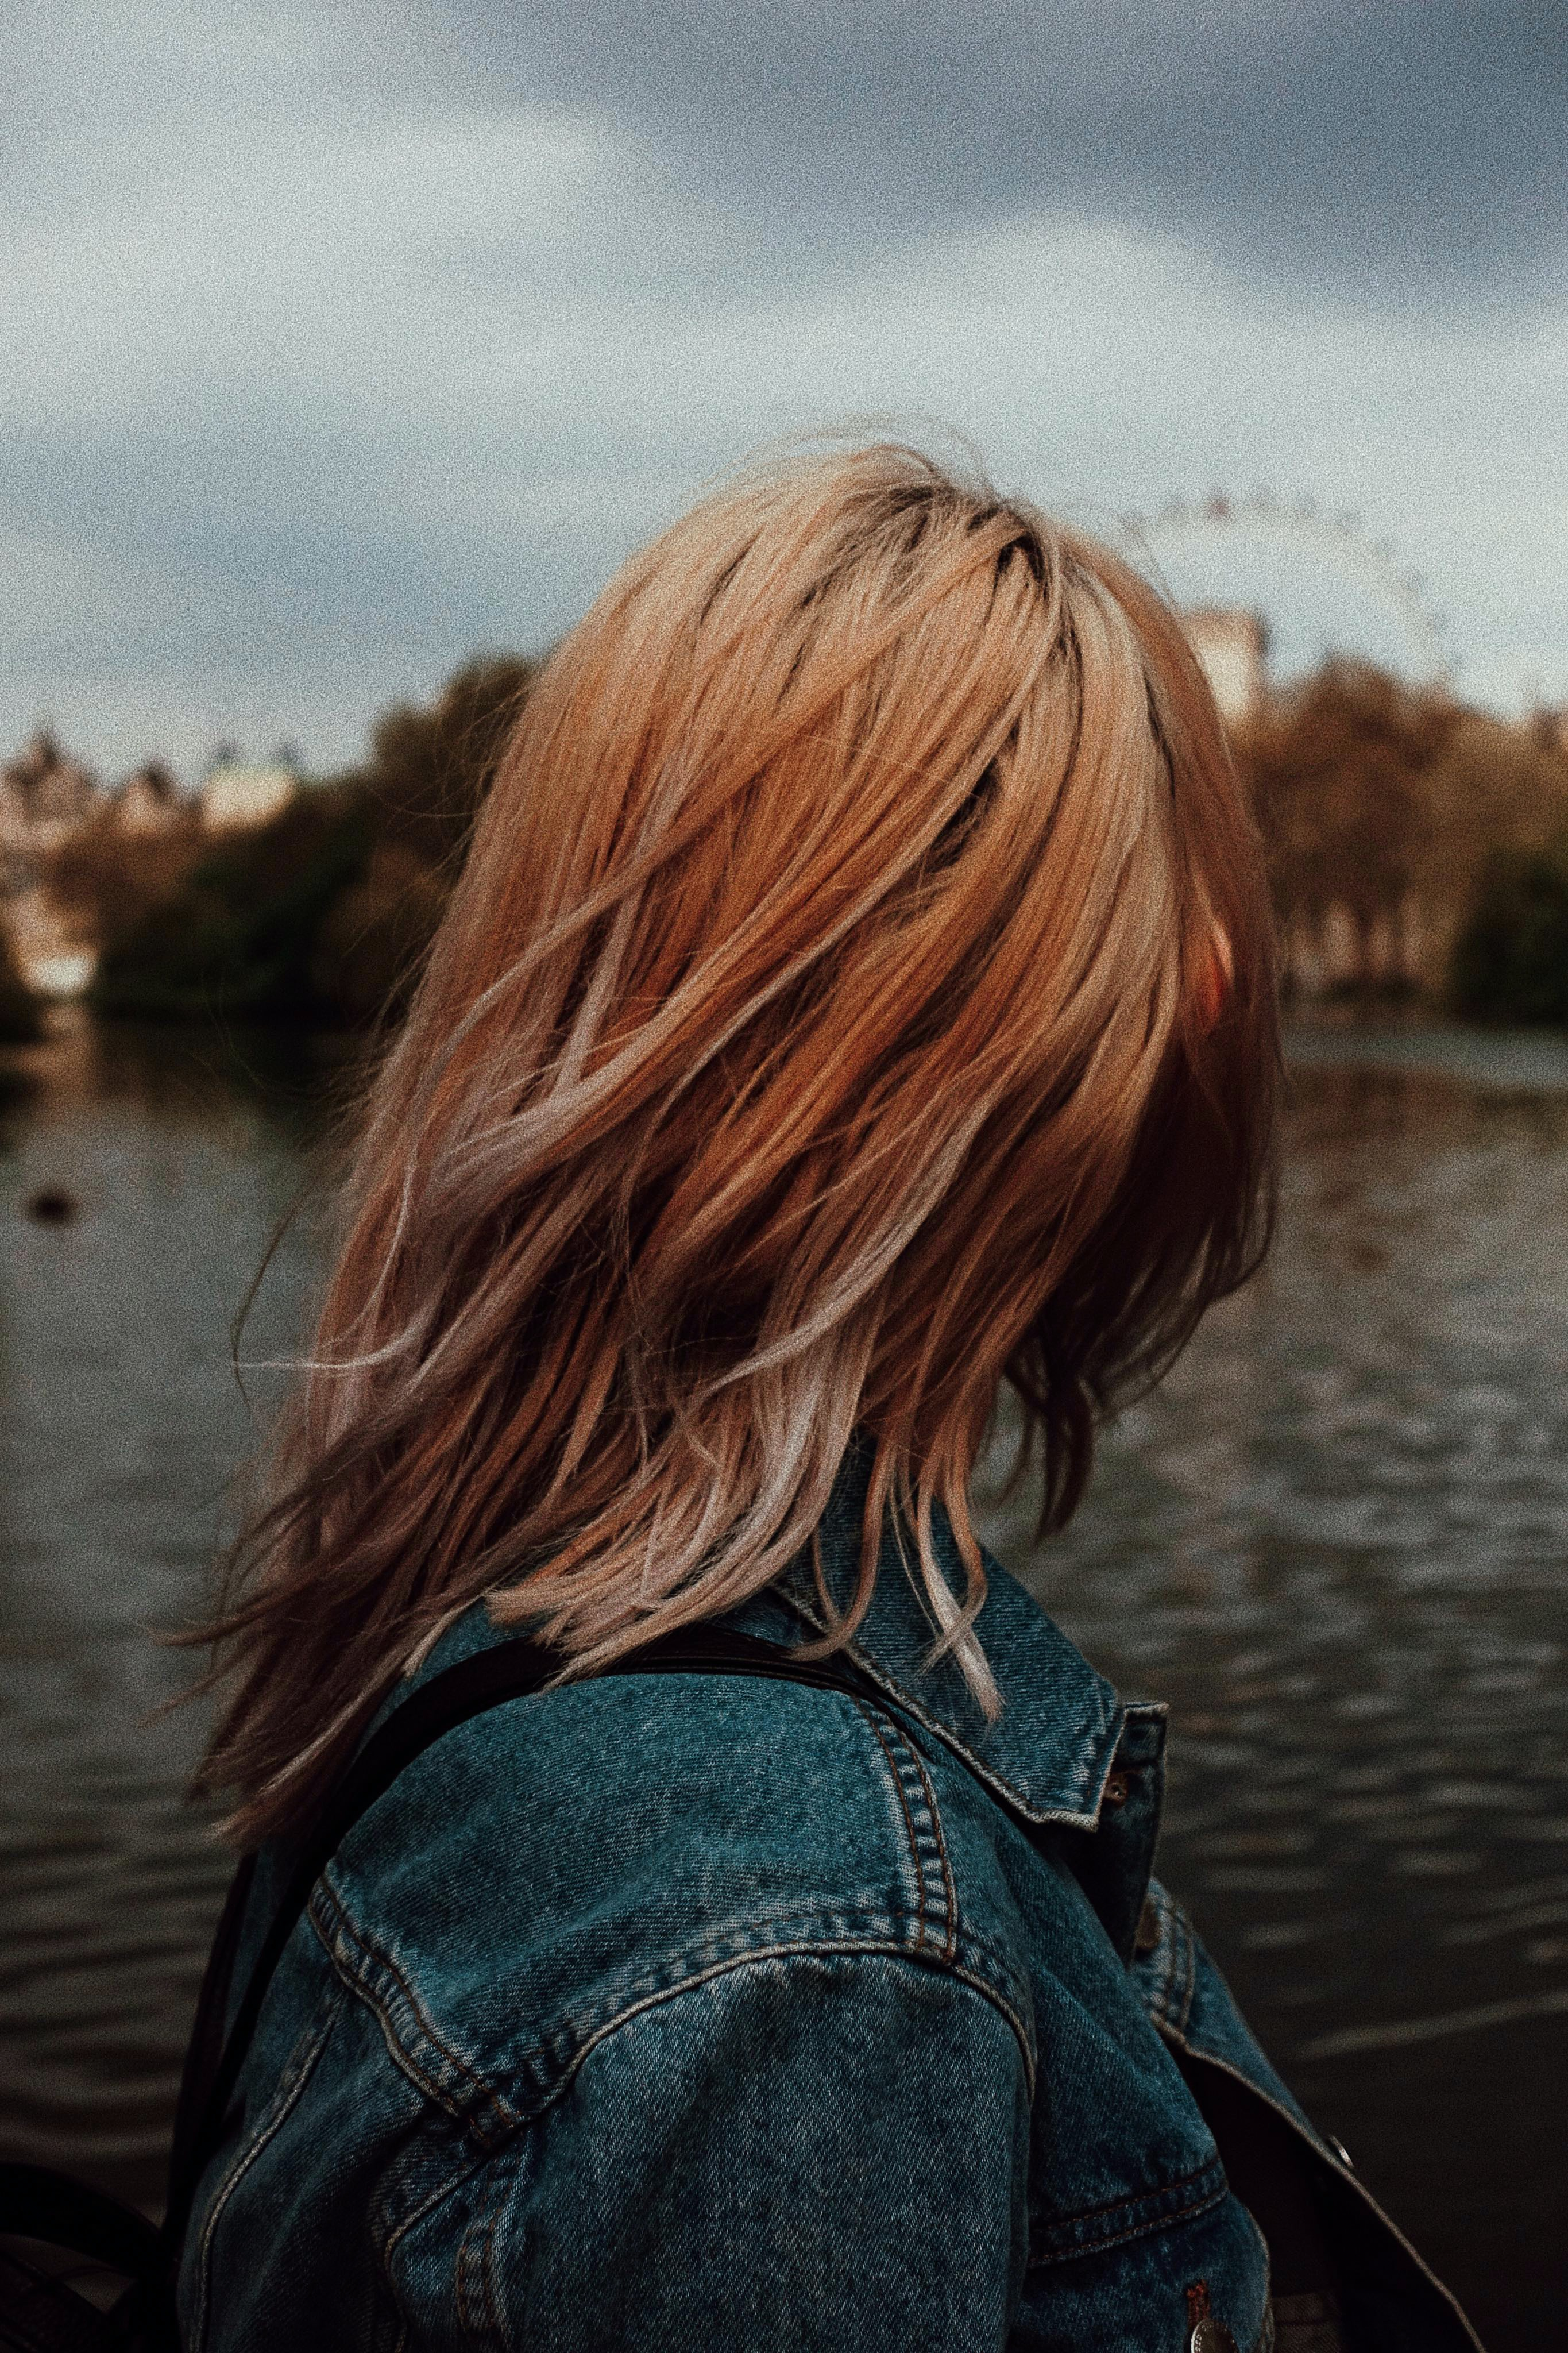 woman in blue denim jacket in front of body of water